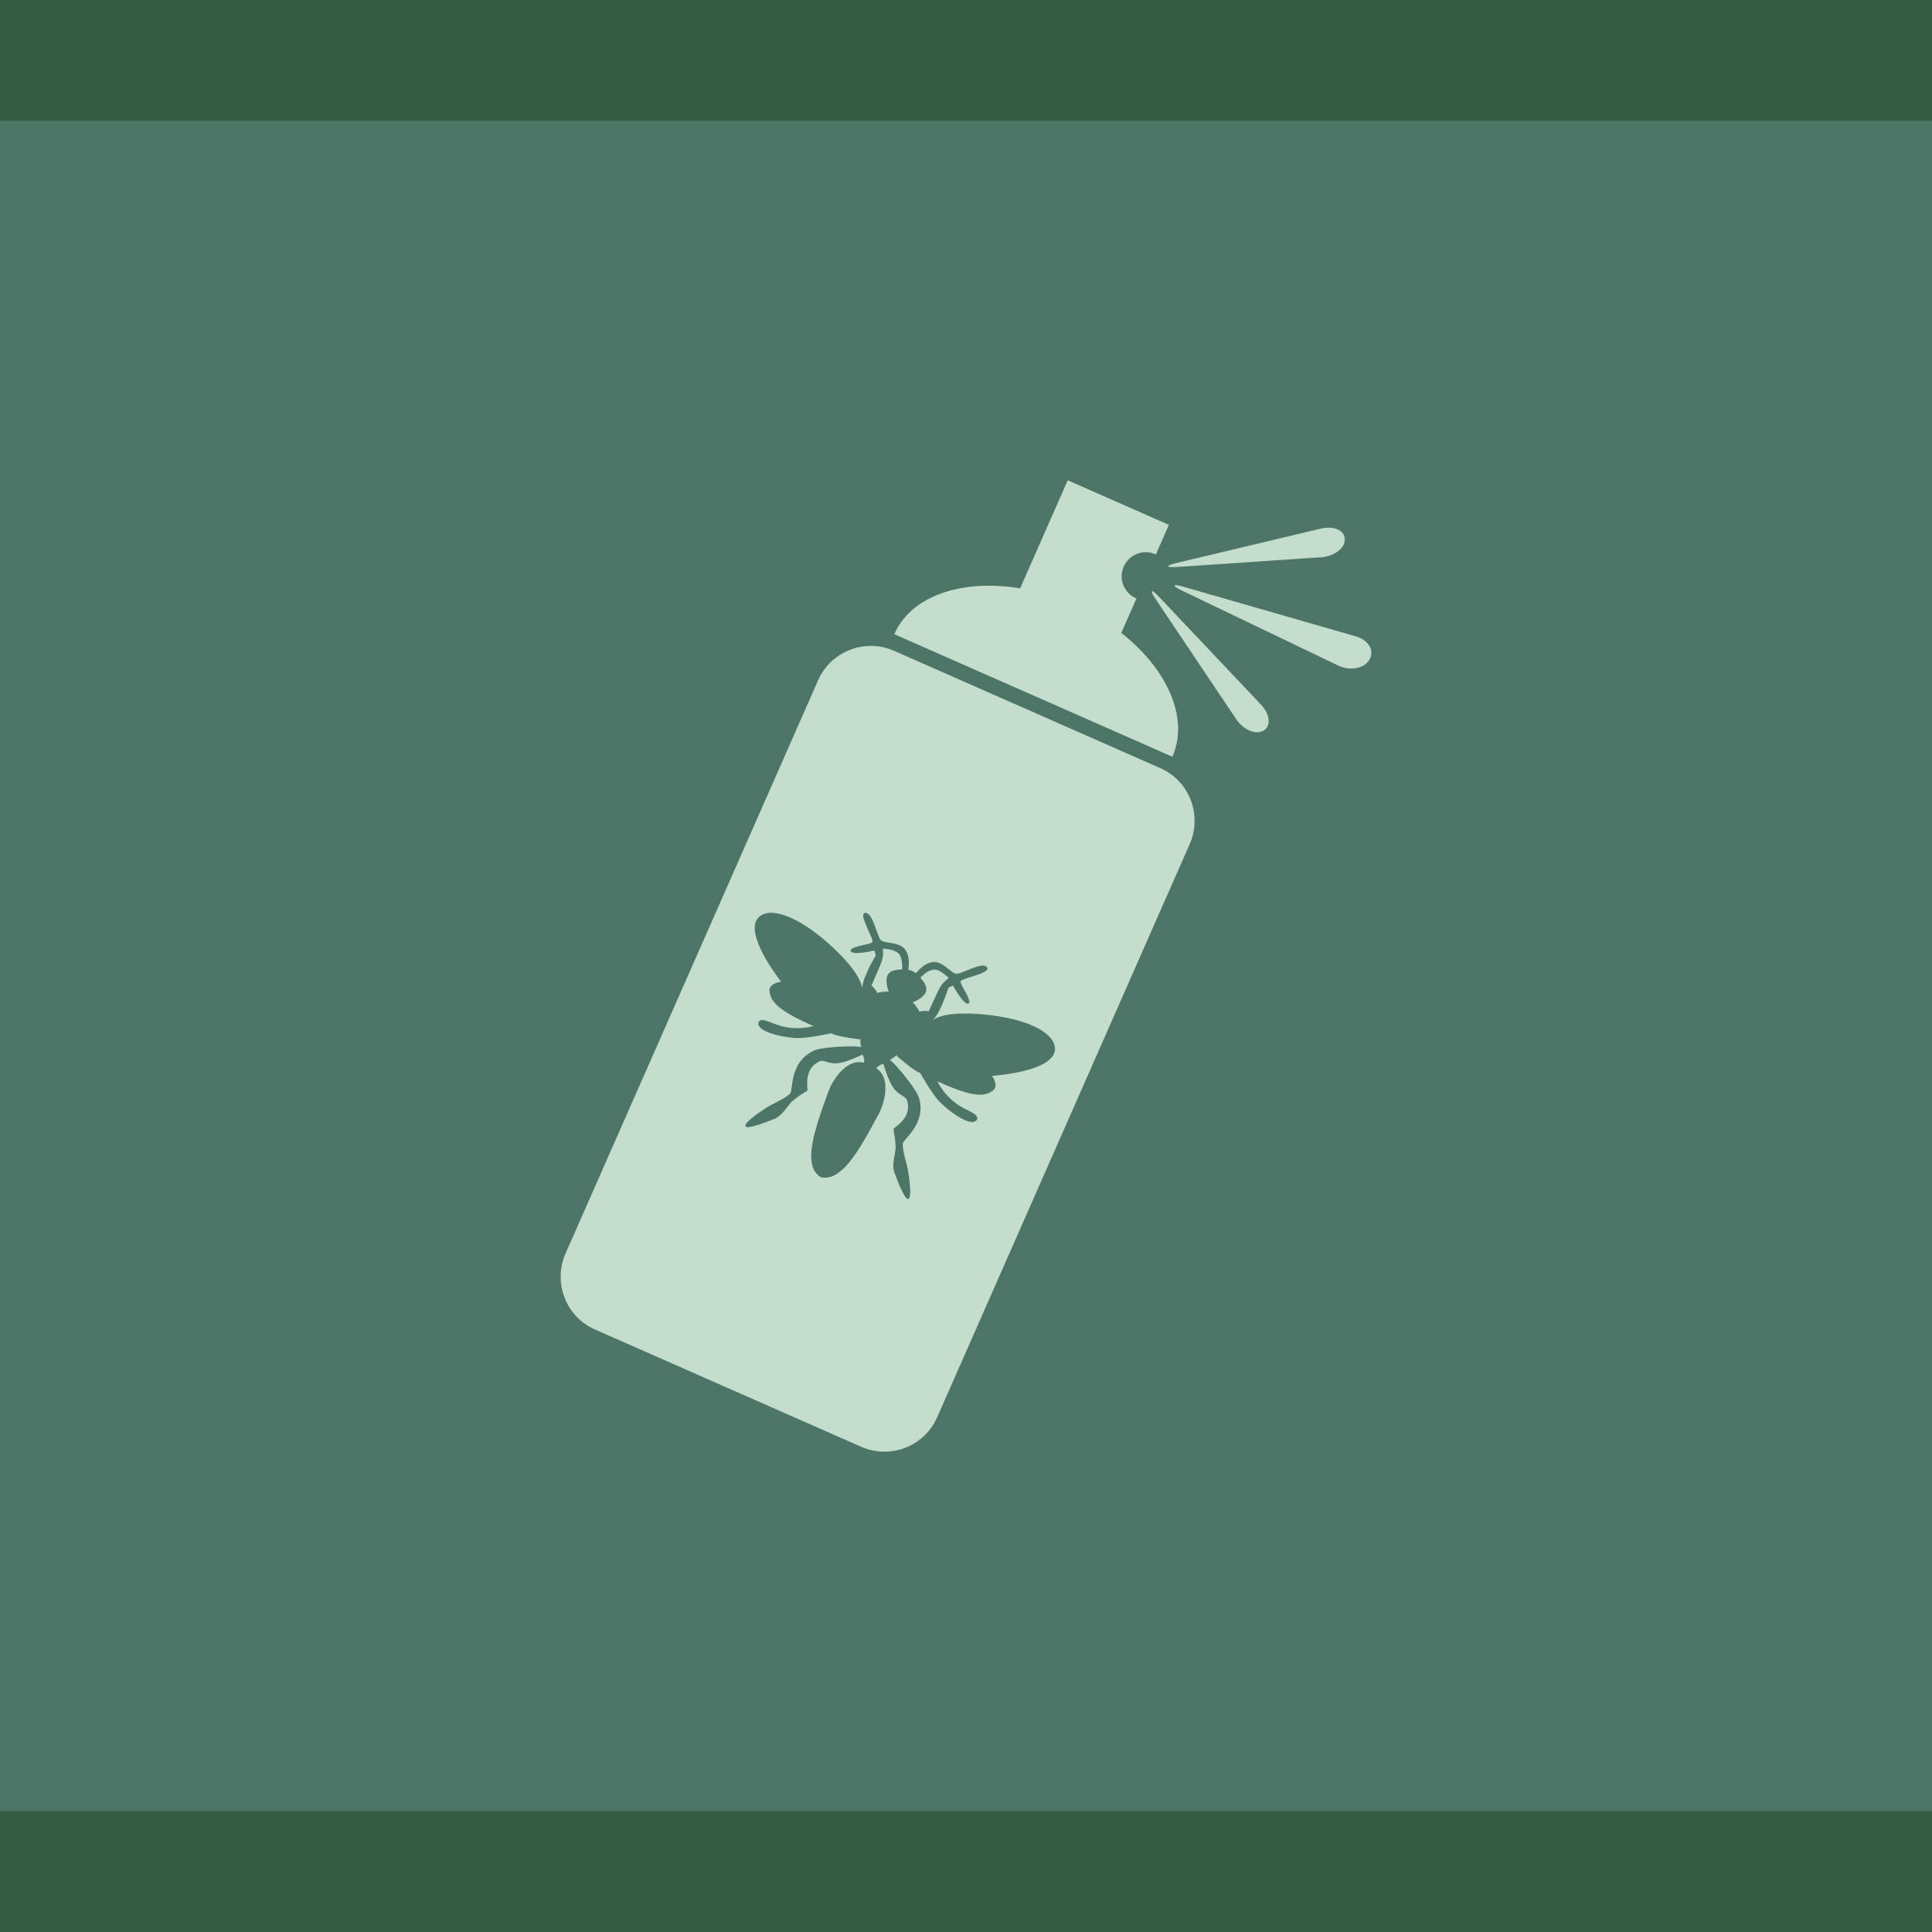 This is a spray insecticide icon.